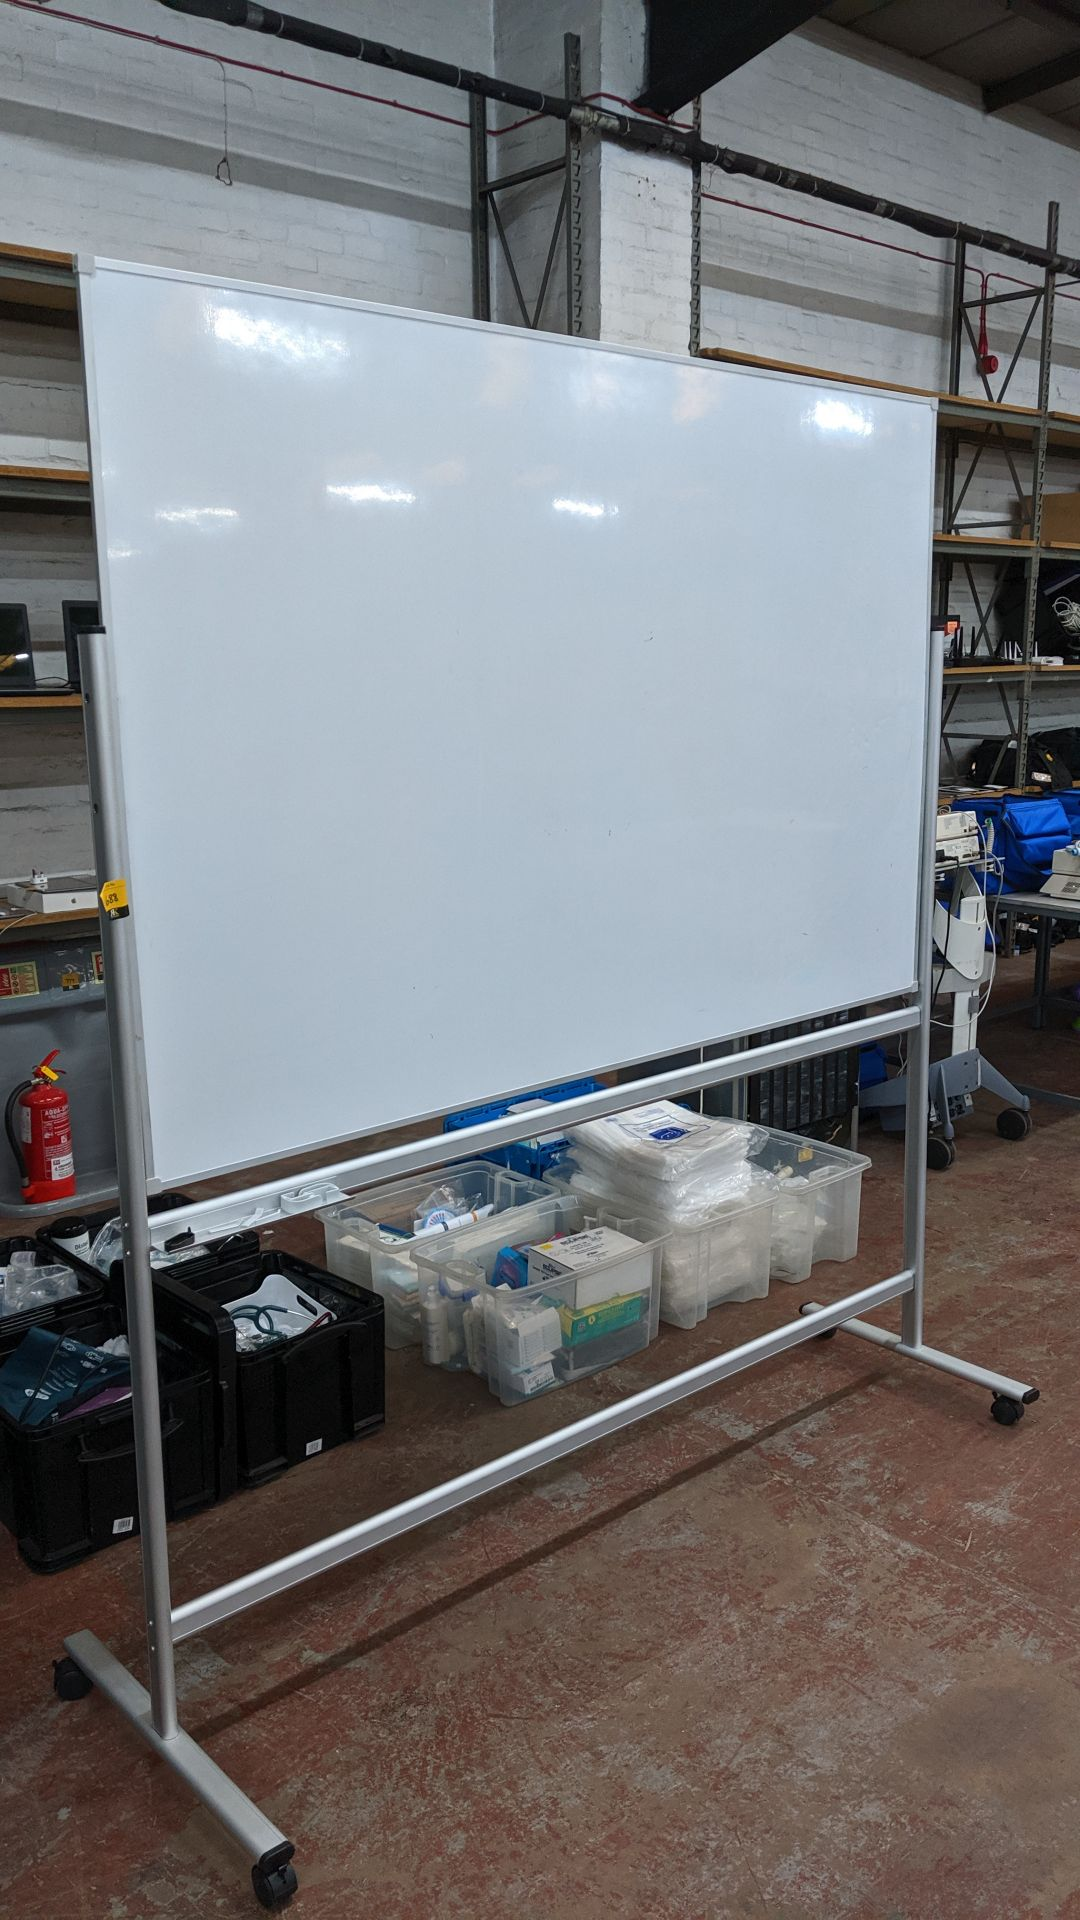 Lot 688 - Very large mobile reversible whiteboard, circa 180cm wide & circa 120cm tall including stand. This